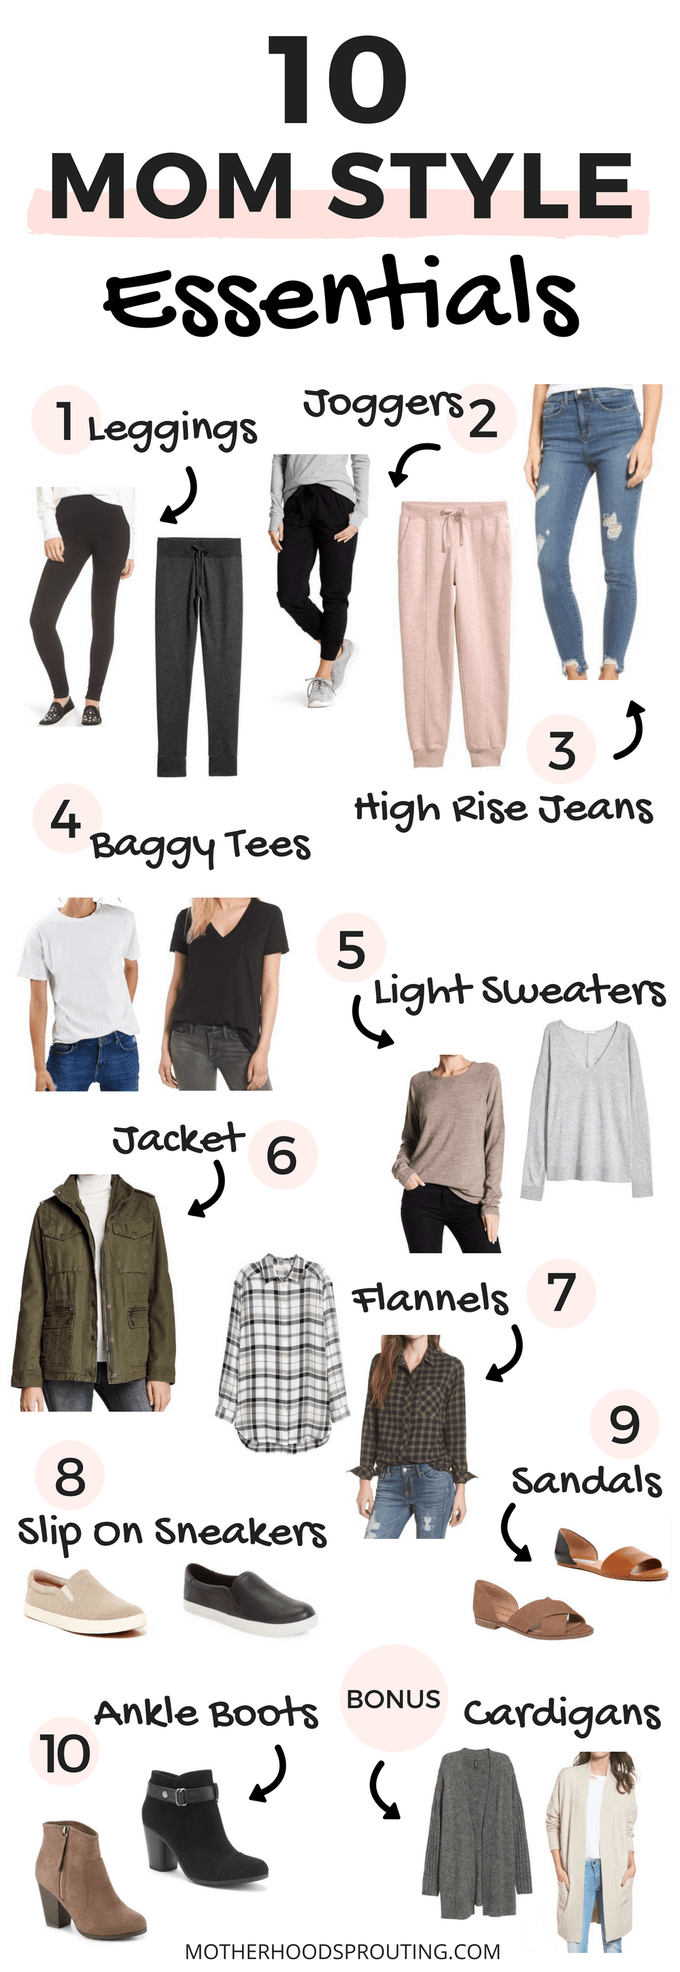 Learn the 10 mom style essentials every mama should have to make getting dressed in the morning a quick and easy process! The 10 mom style clothing it…